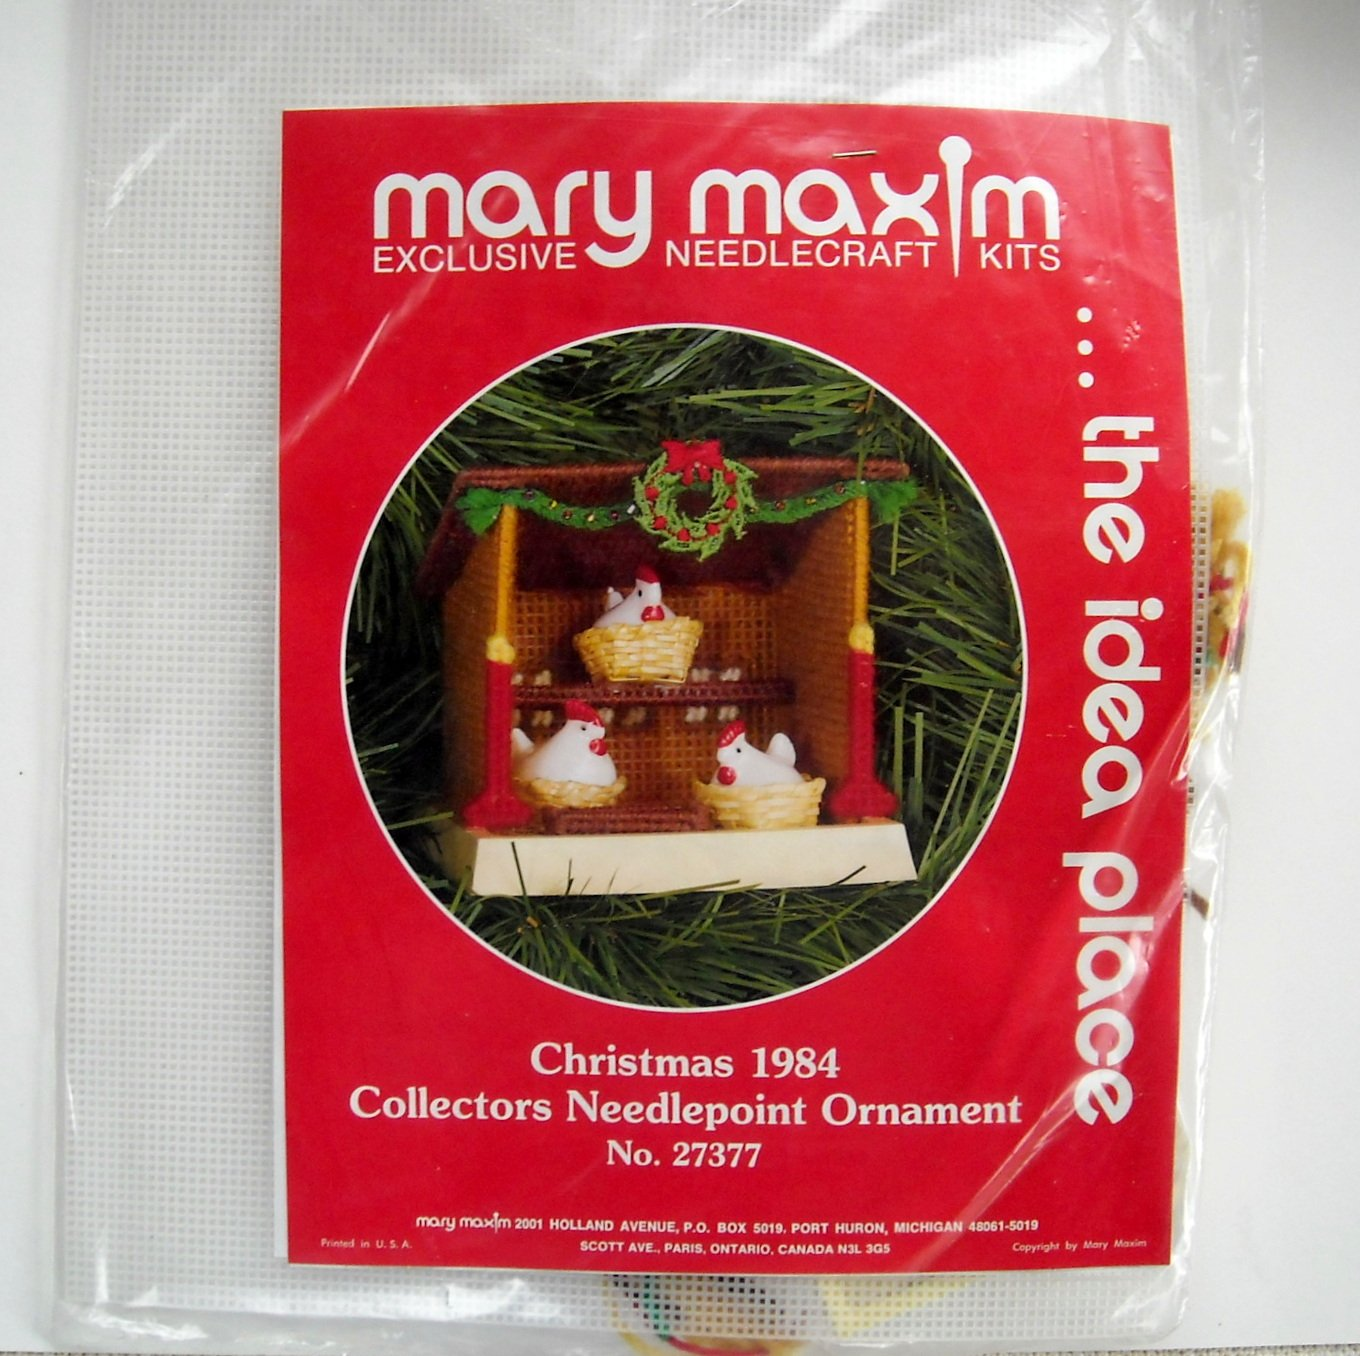 Mary Maxim Christmas 1984 Collectors Needlepoint Ornament Kit No 27377